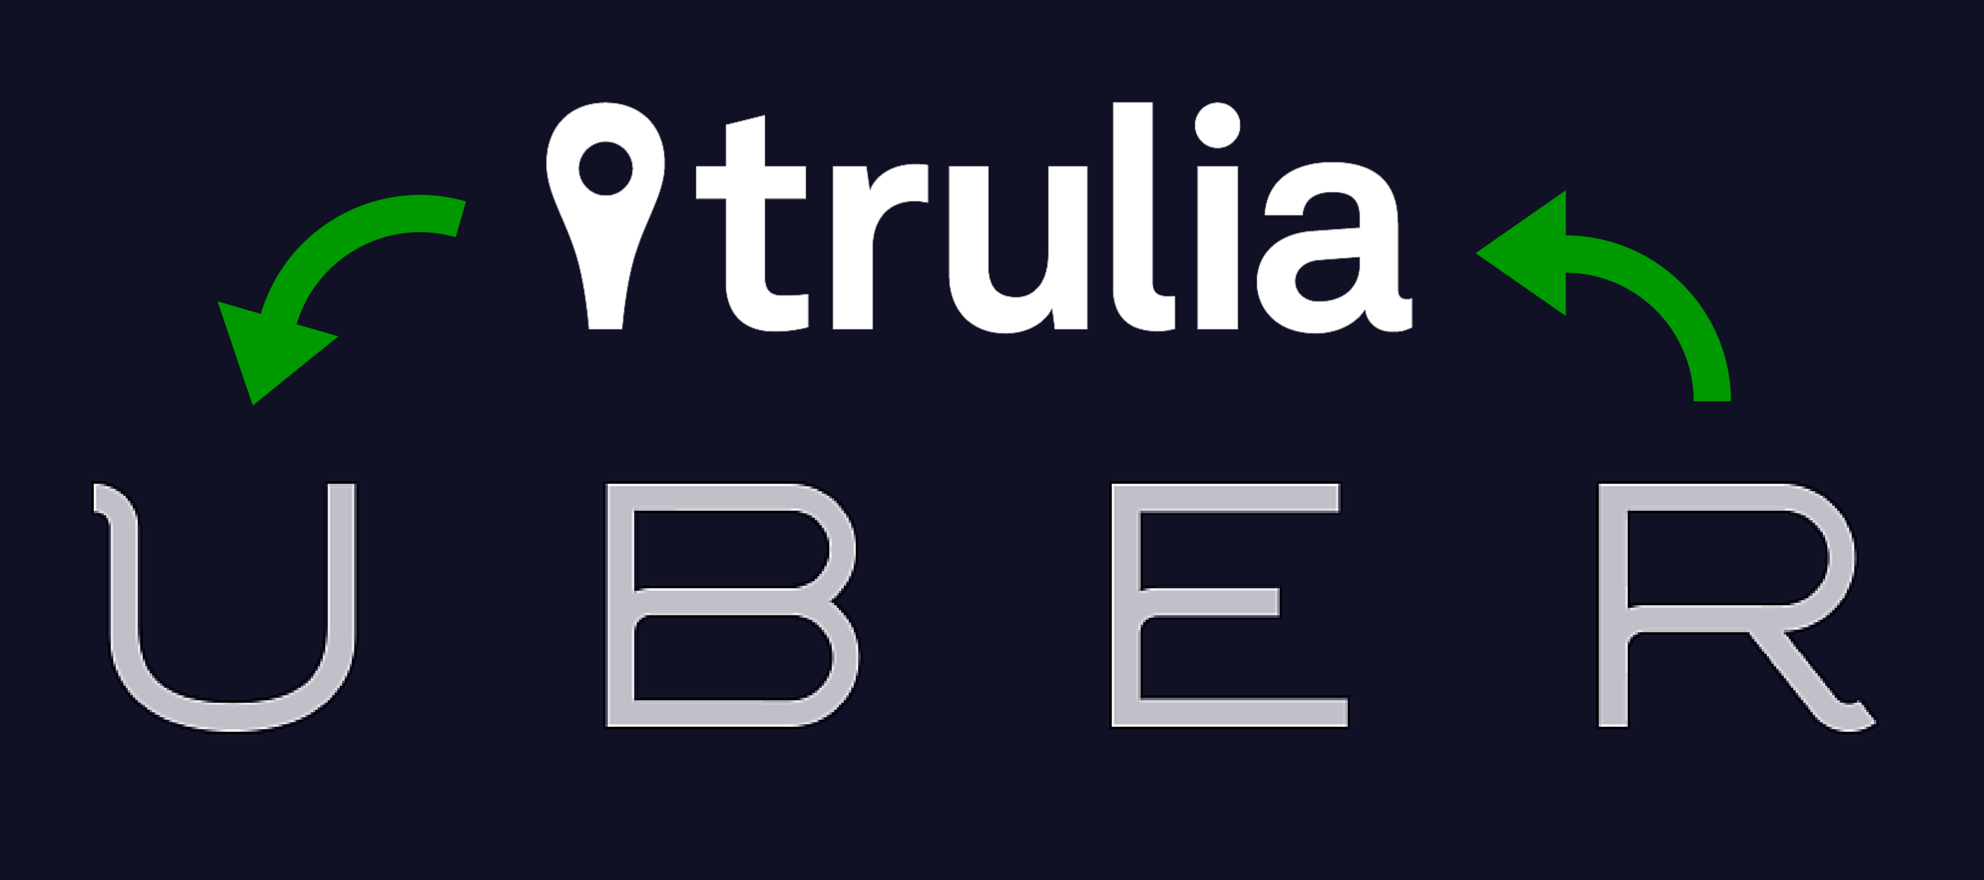 Trulia integrates with Uber to help buyers visit listings